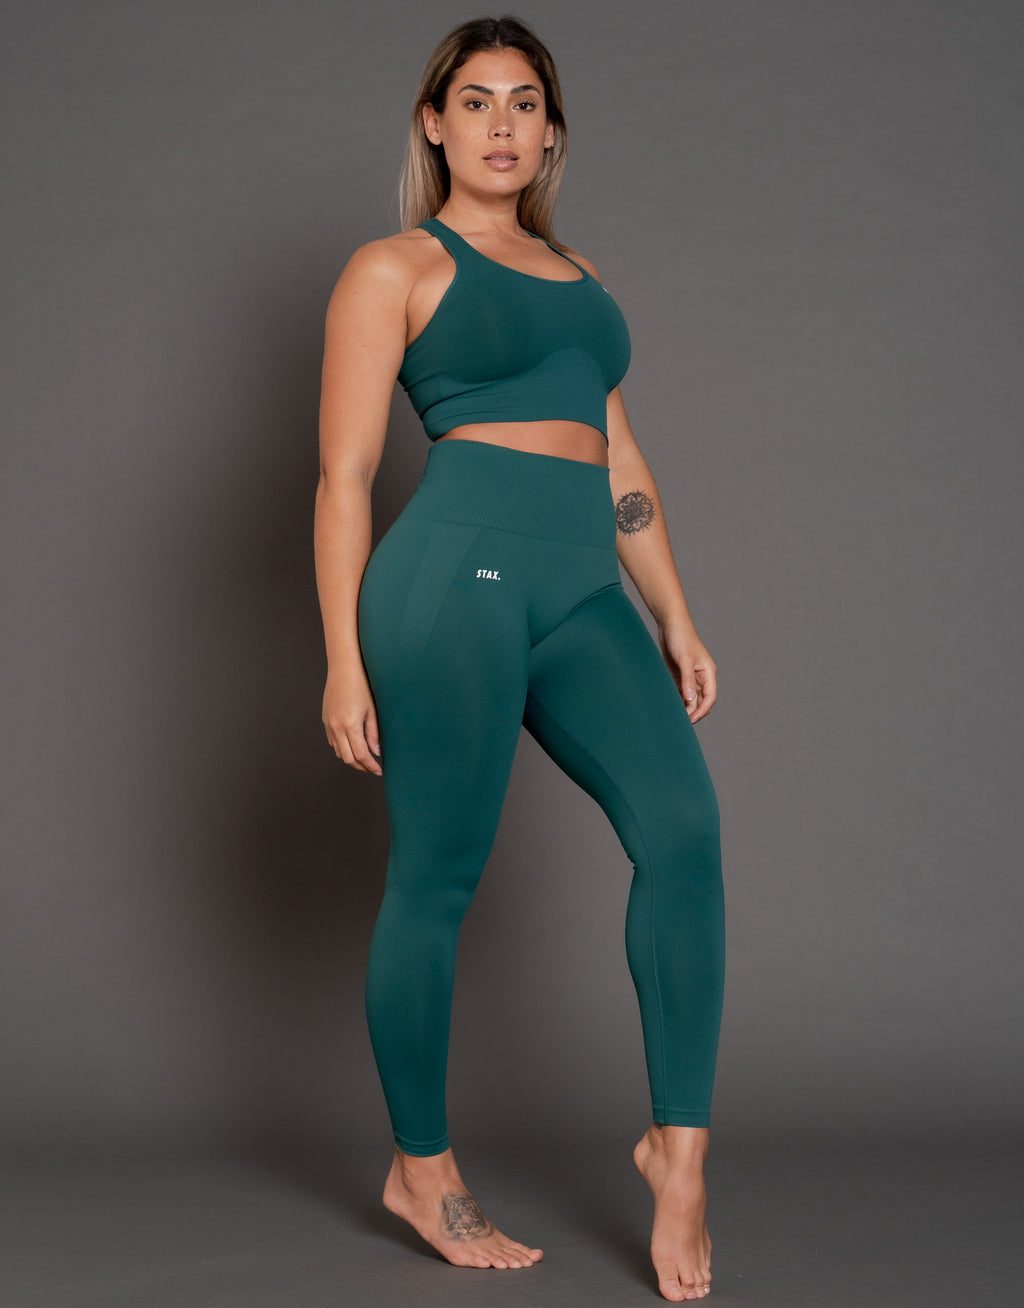 STAX. Premium Seamless V3 Full Length Tights - Jade (Green)